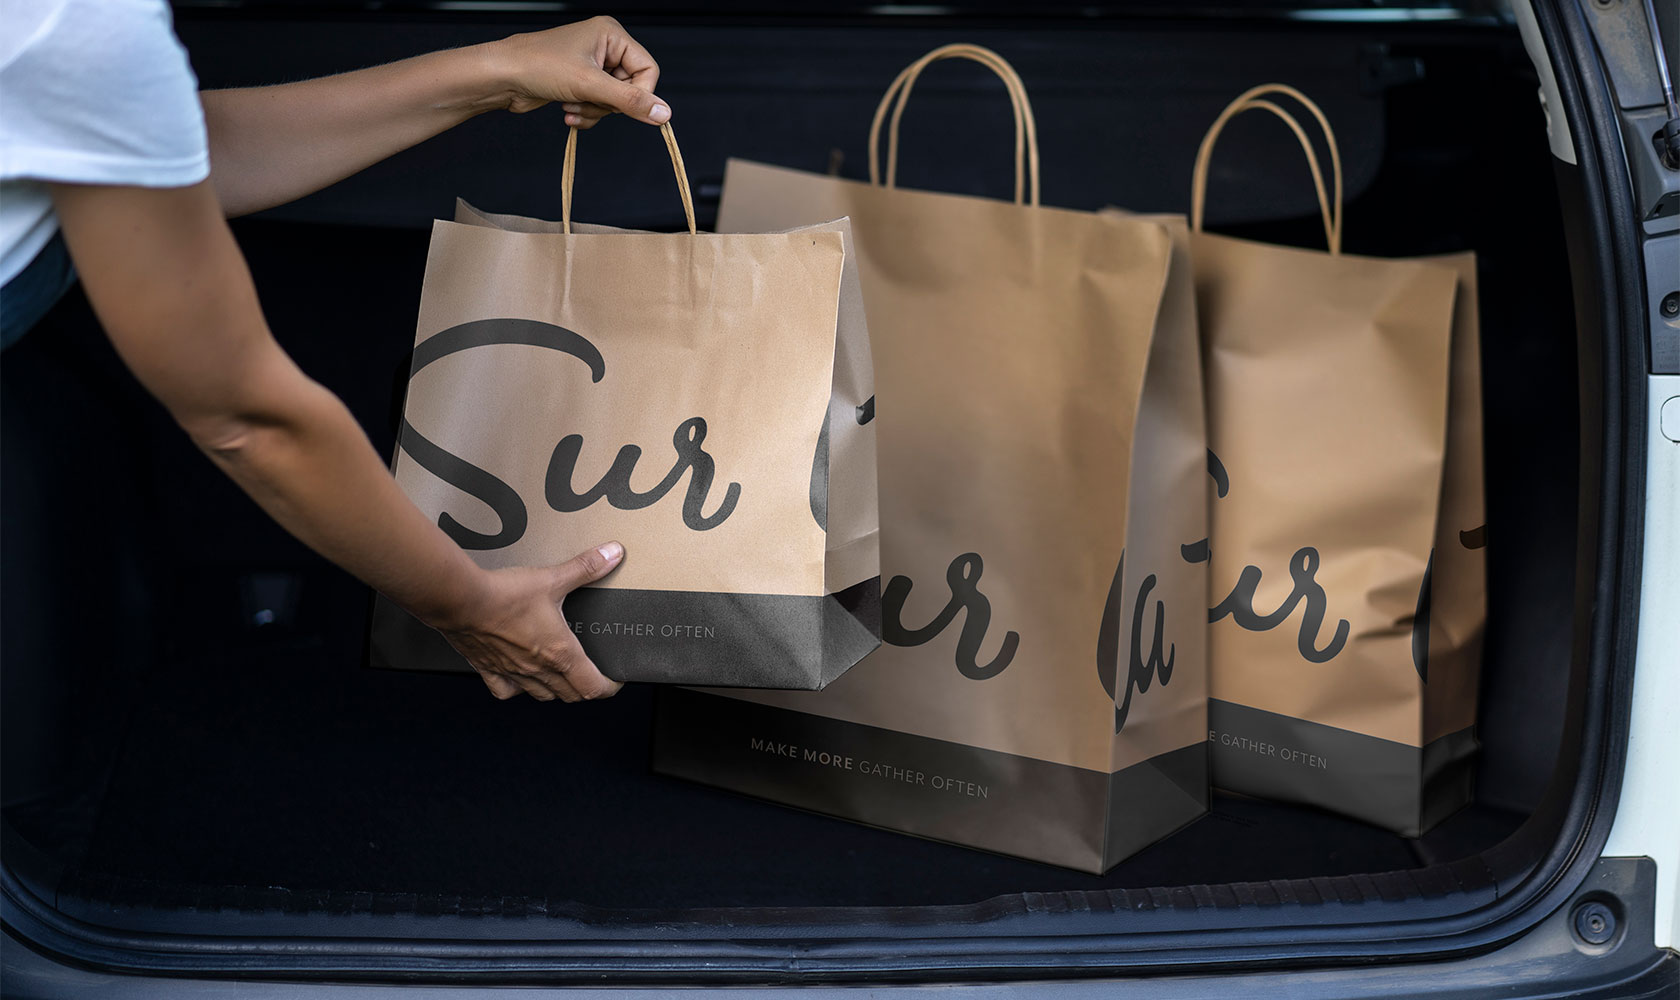 person unloading Sur La Table shopping bags from trunk of car